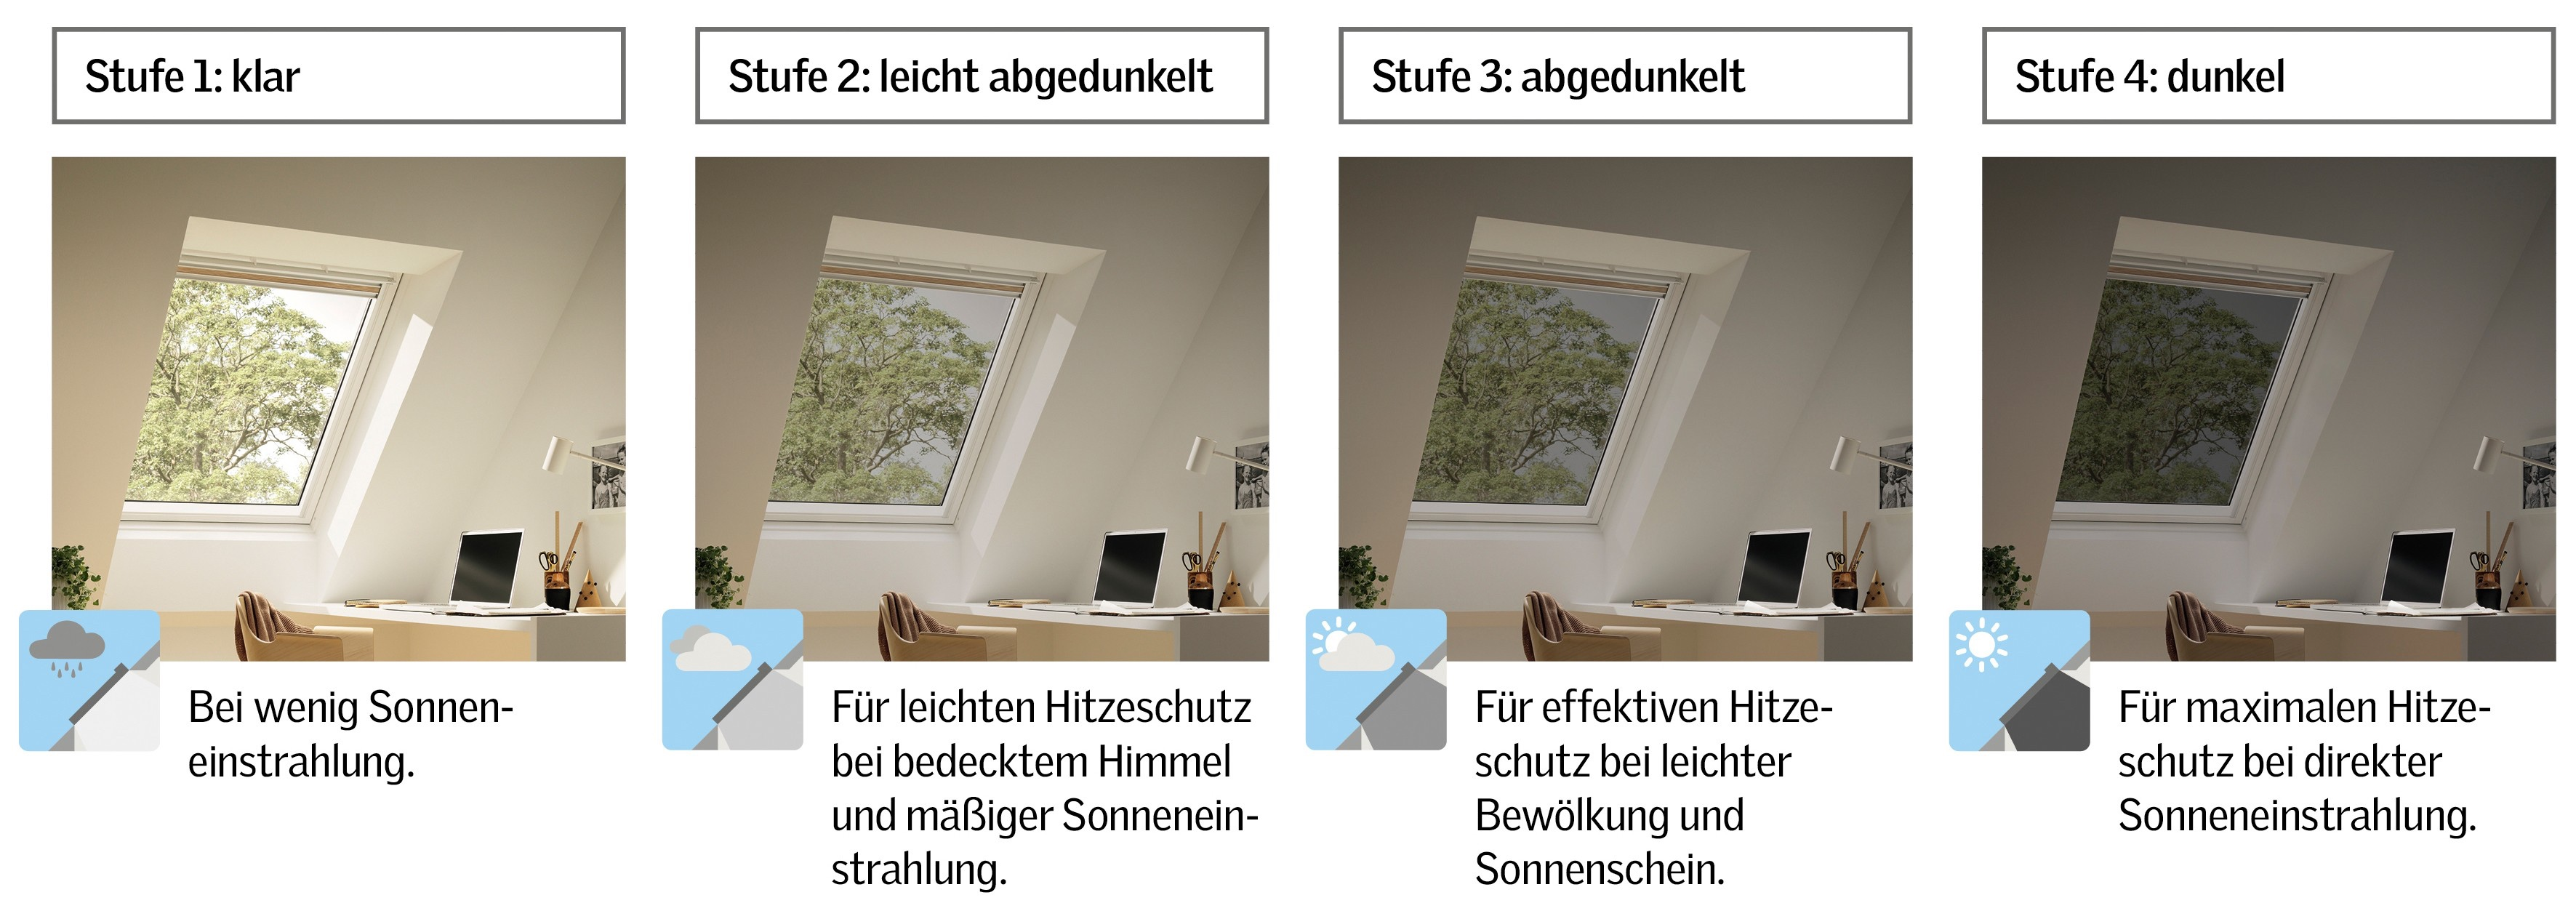 dachfenster sonnenschutz mit elektrochromer verglasung fenster baustoffwissen. Black Bedroom Furniture Sets. Home Design Ideas